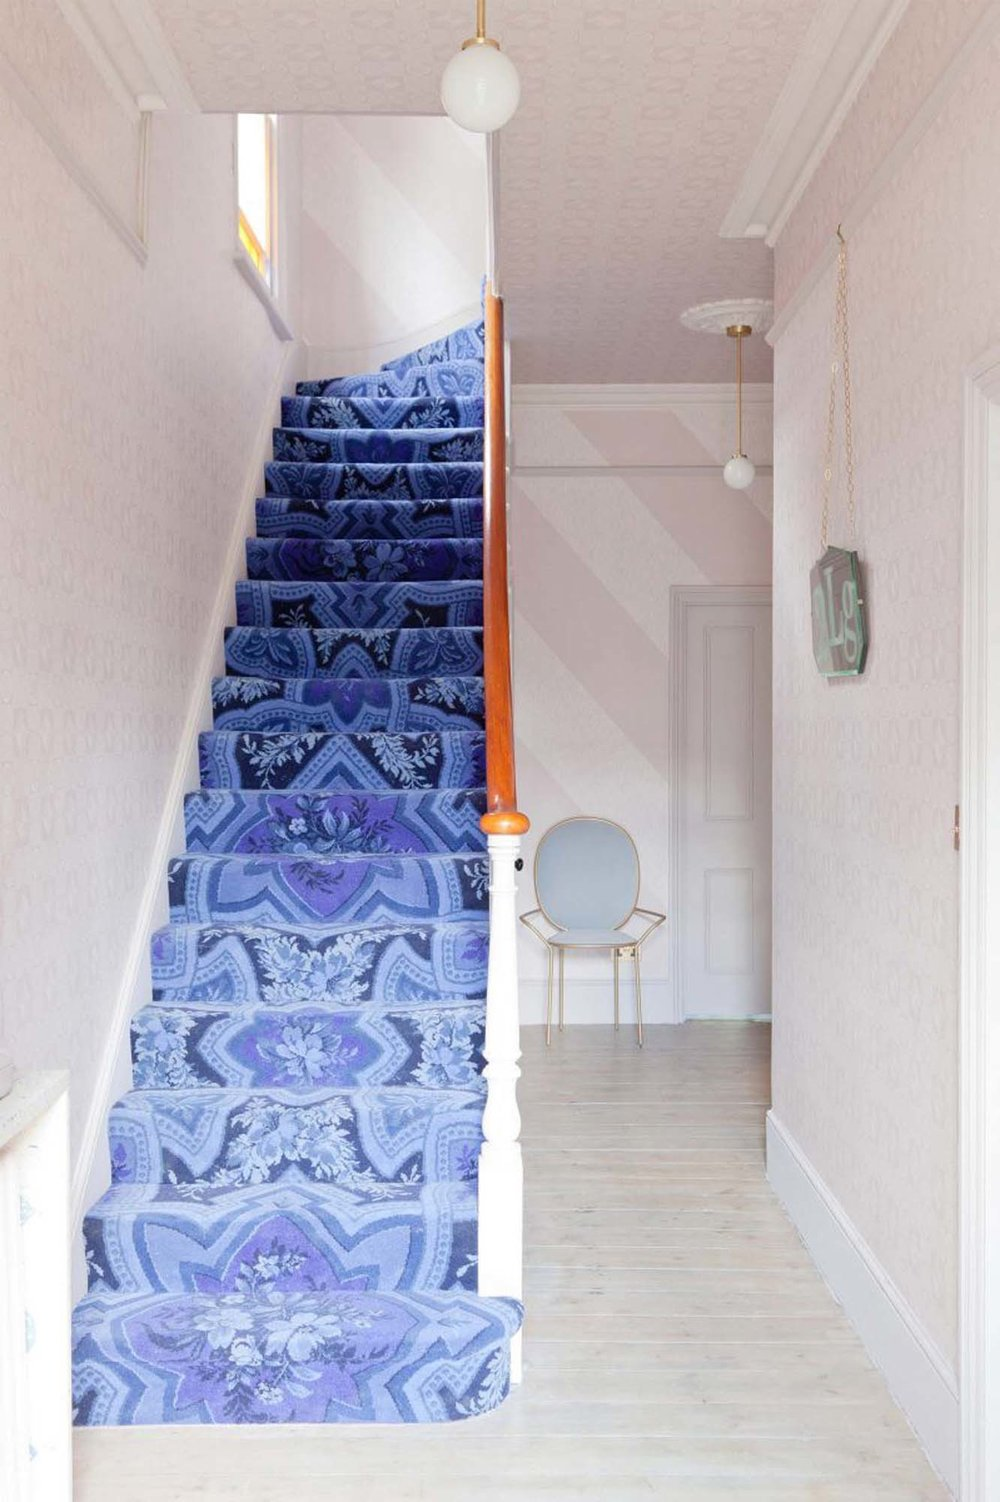 Jordan and Russell's hallway has had the full 2LG treatment from top to bottom/Photo: Megan Taylor